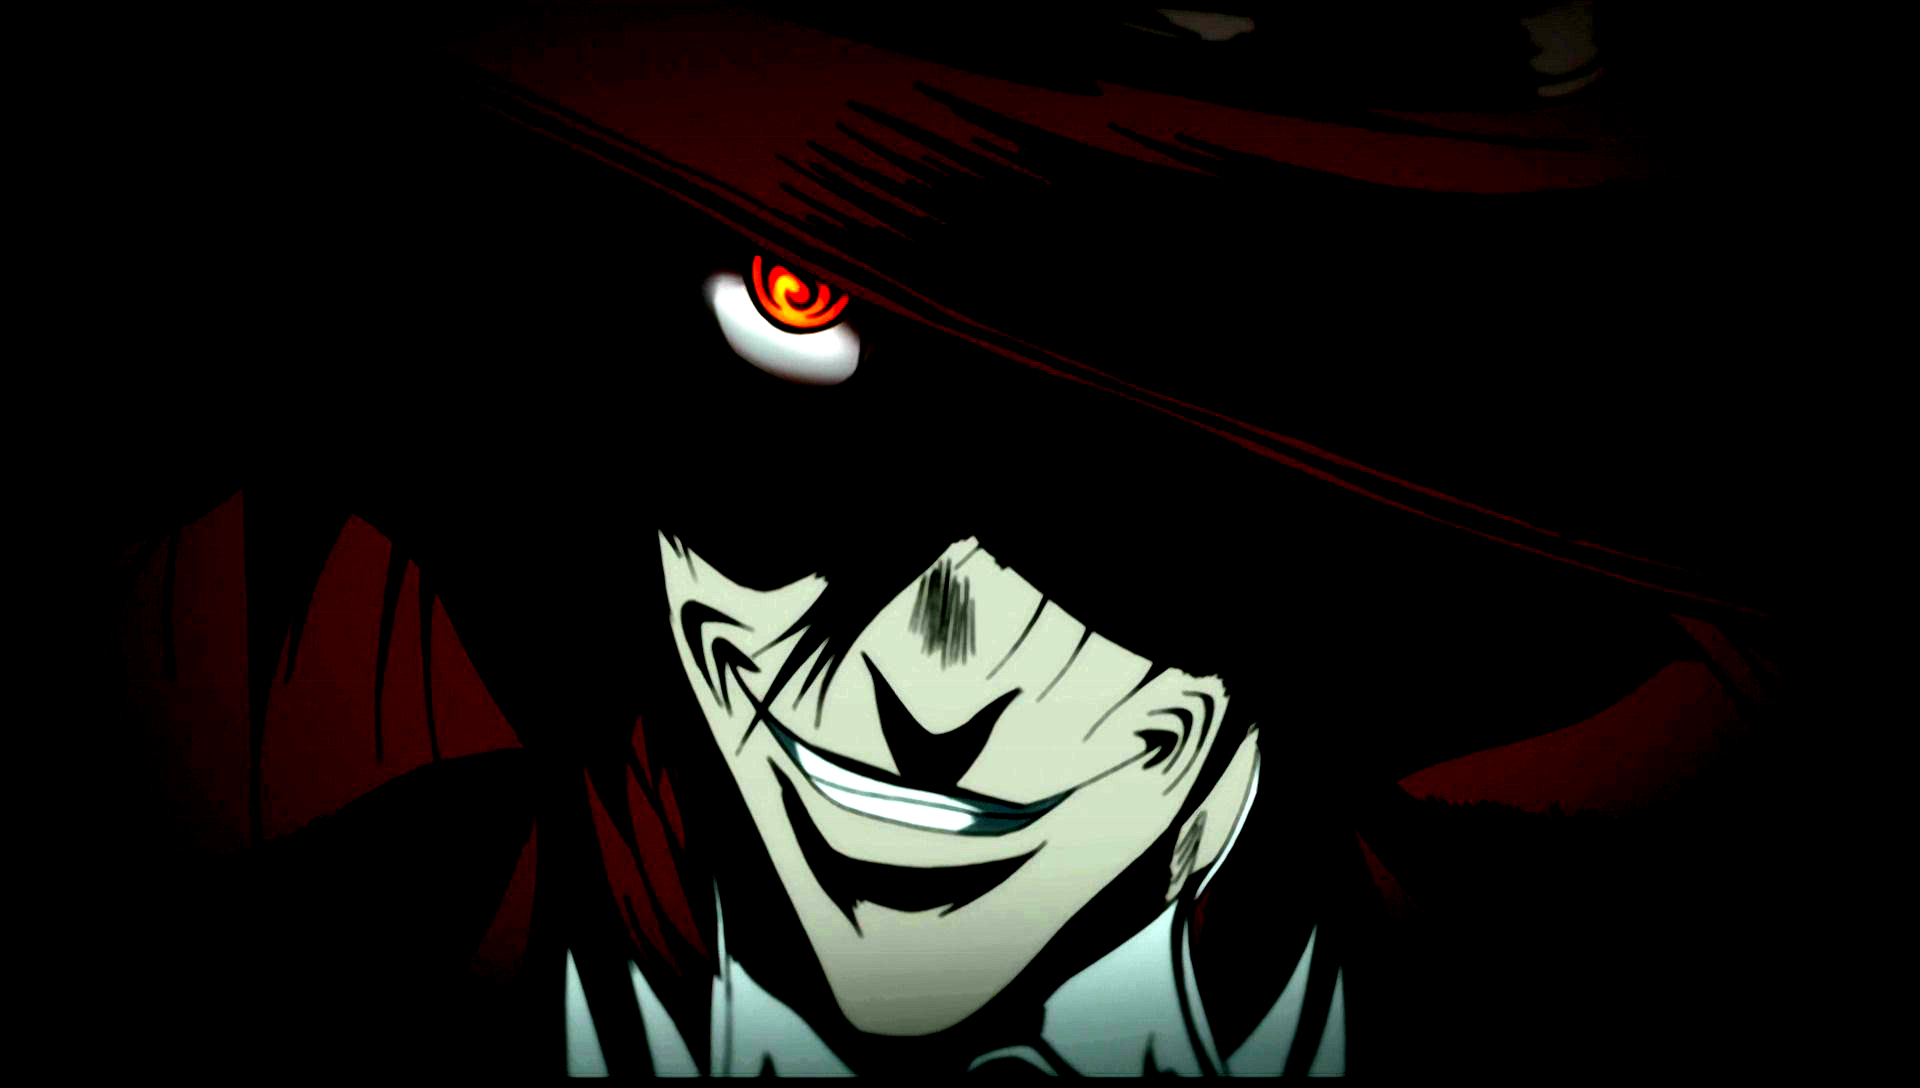 alucard___hellsing_by_mate554-d5g10ct